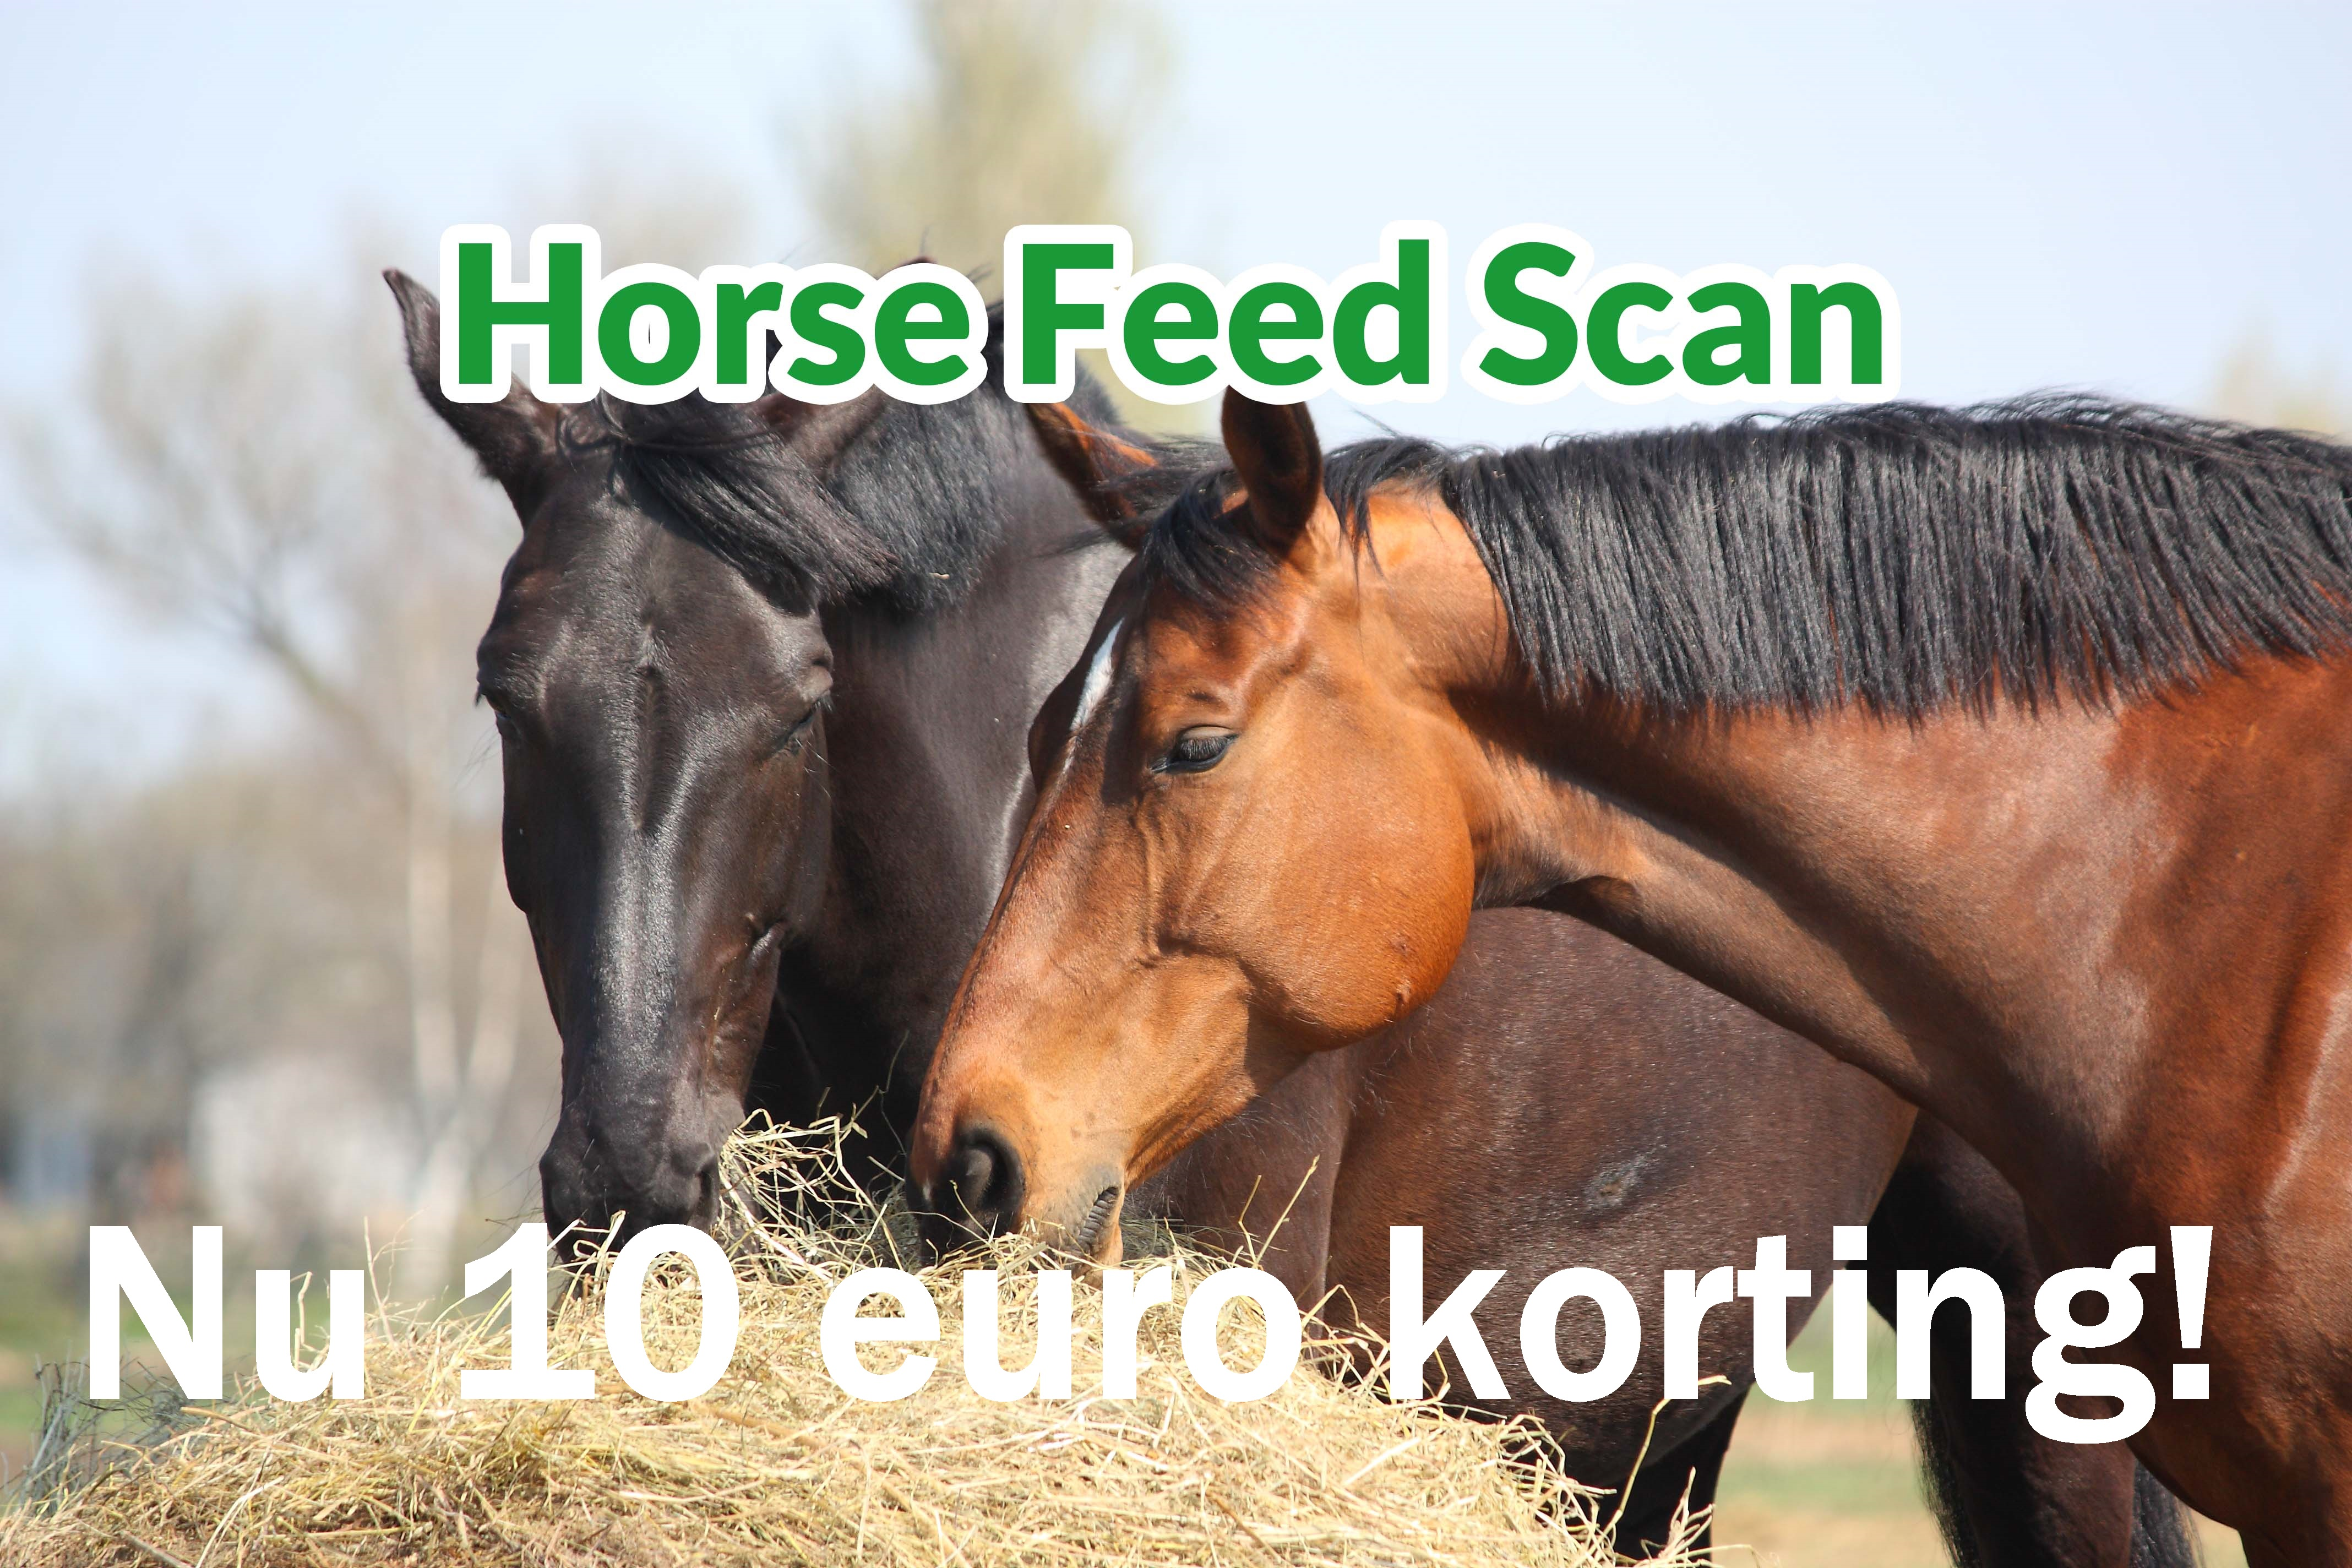 Korting op analyse Horse Feed Scan